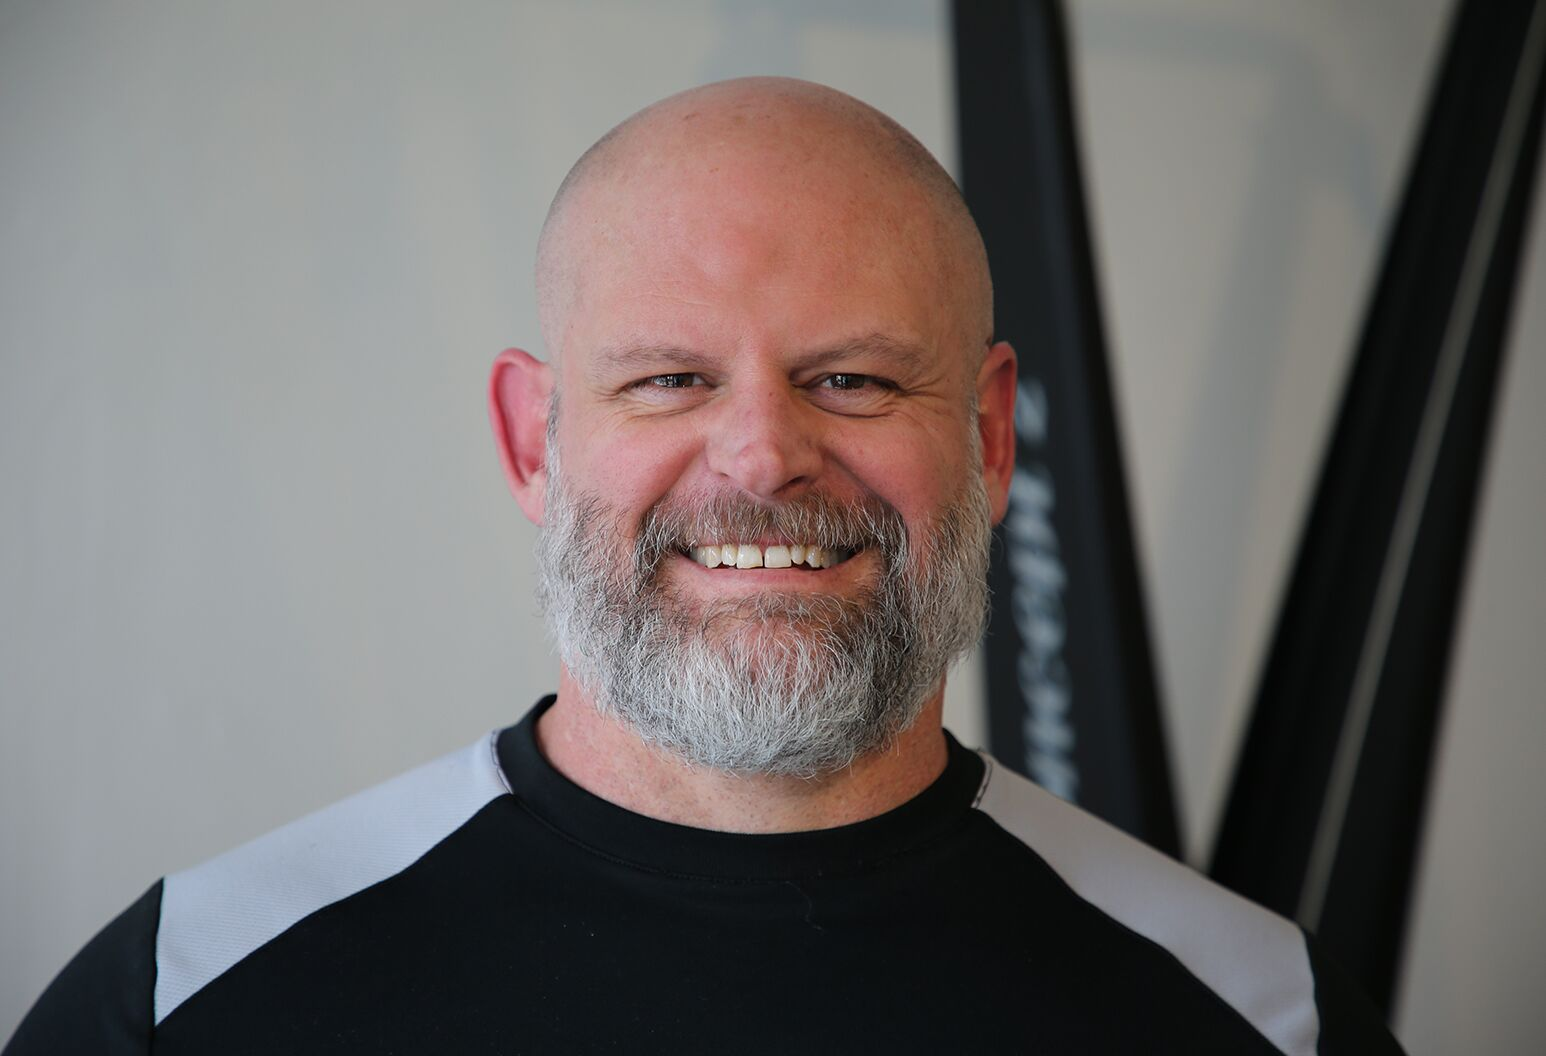 Smiling man in his 40s standing in front of gym equipment.